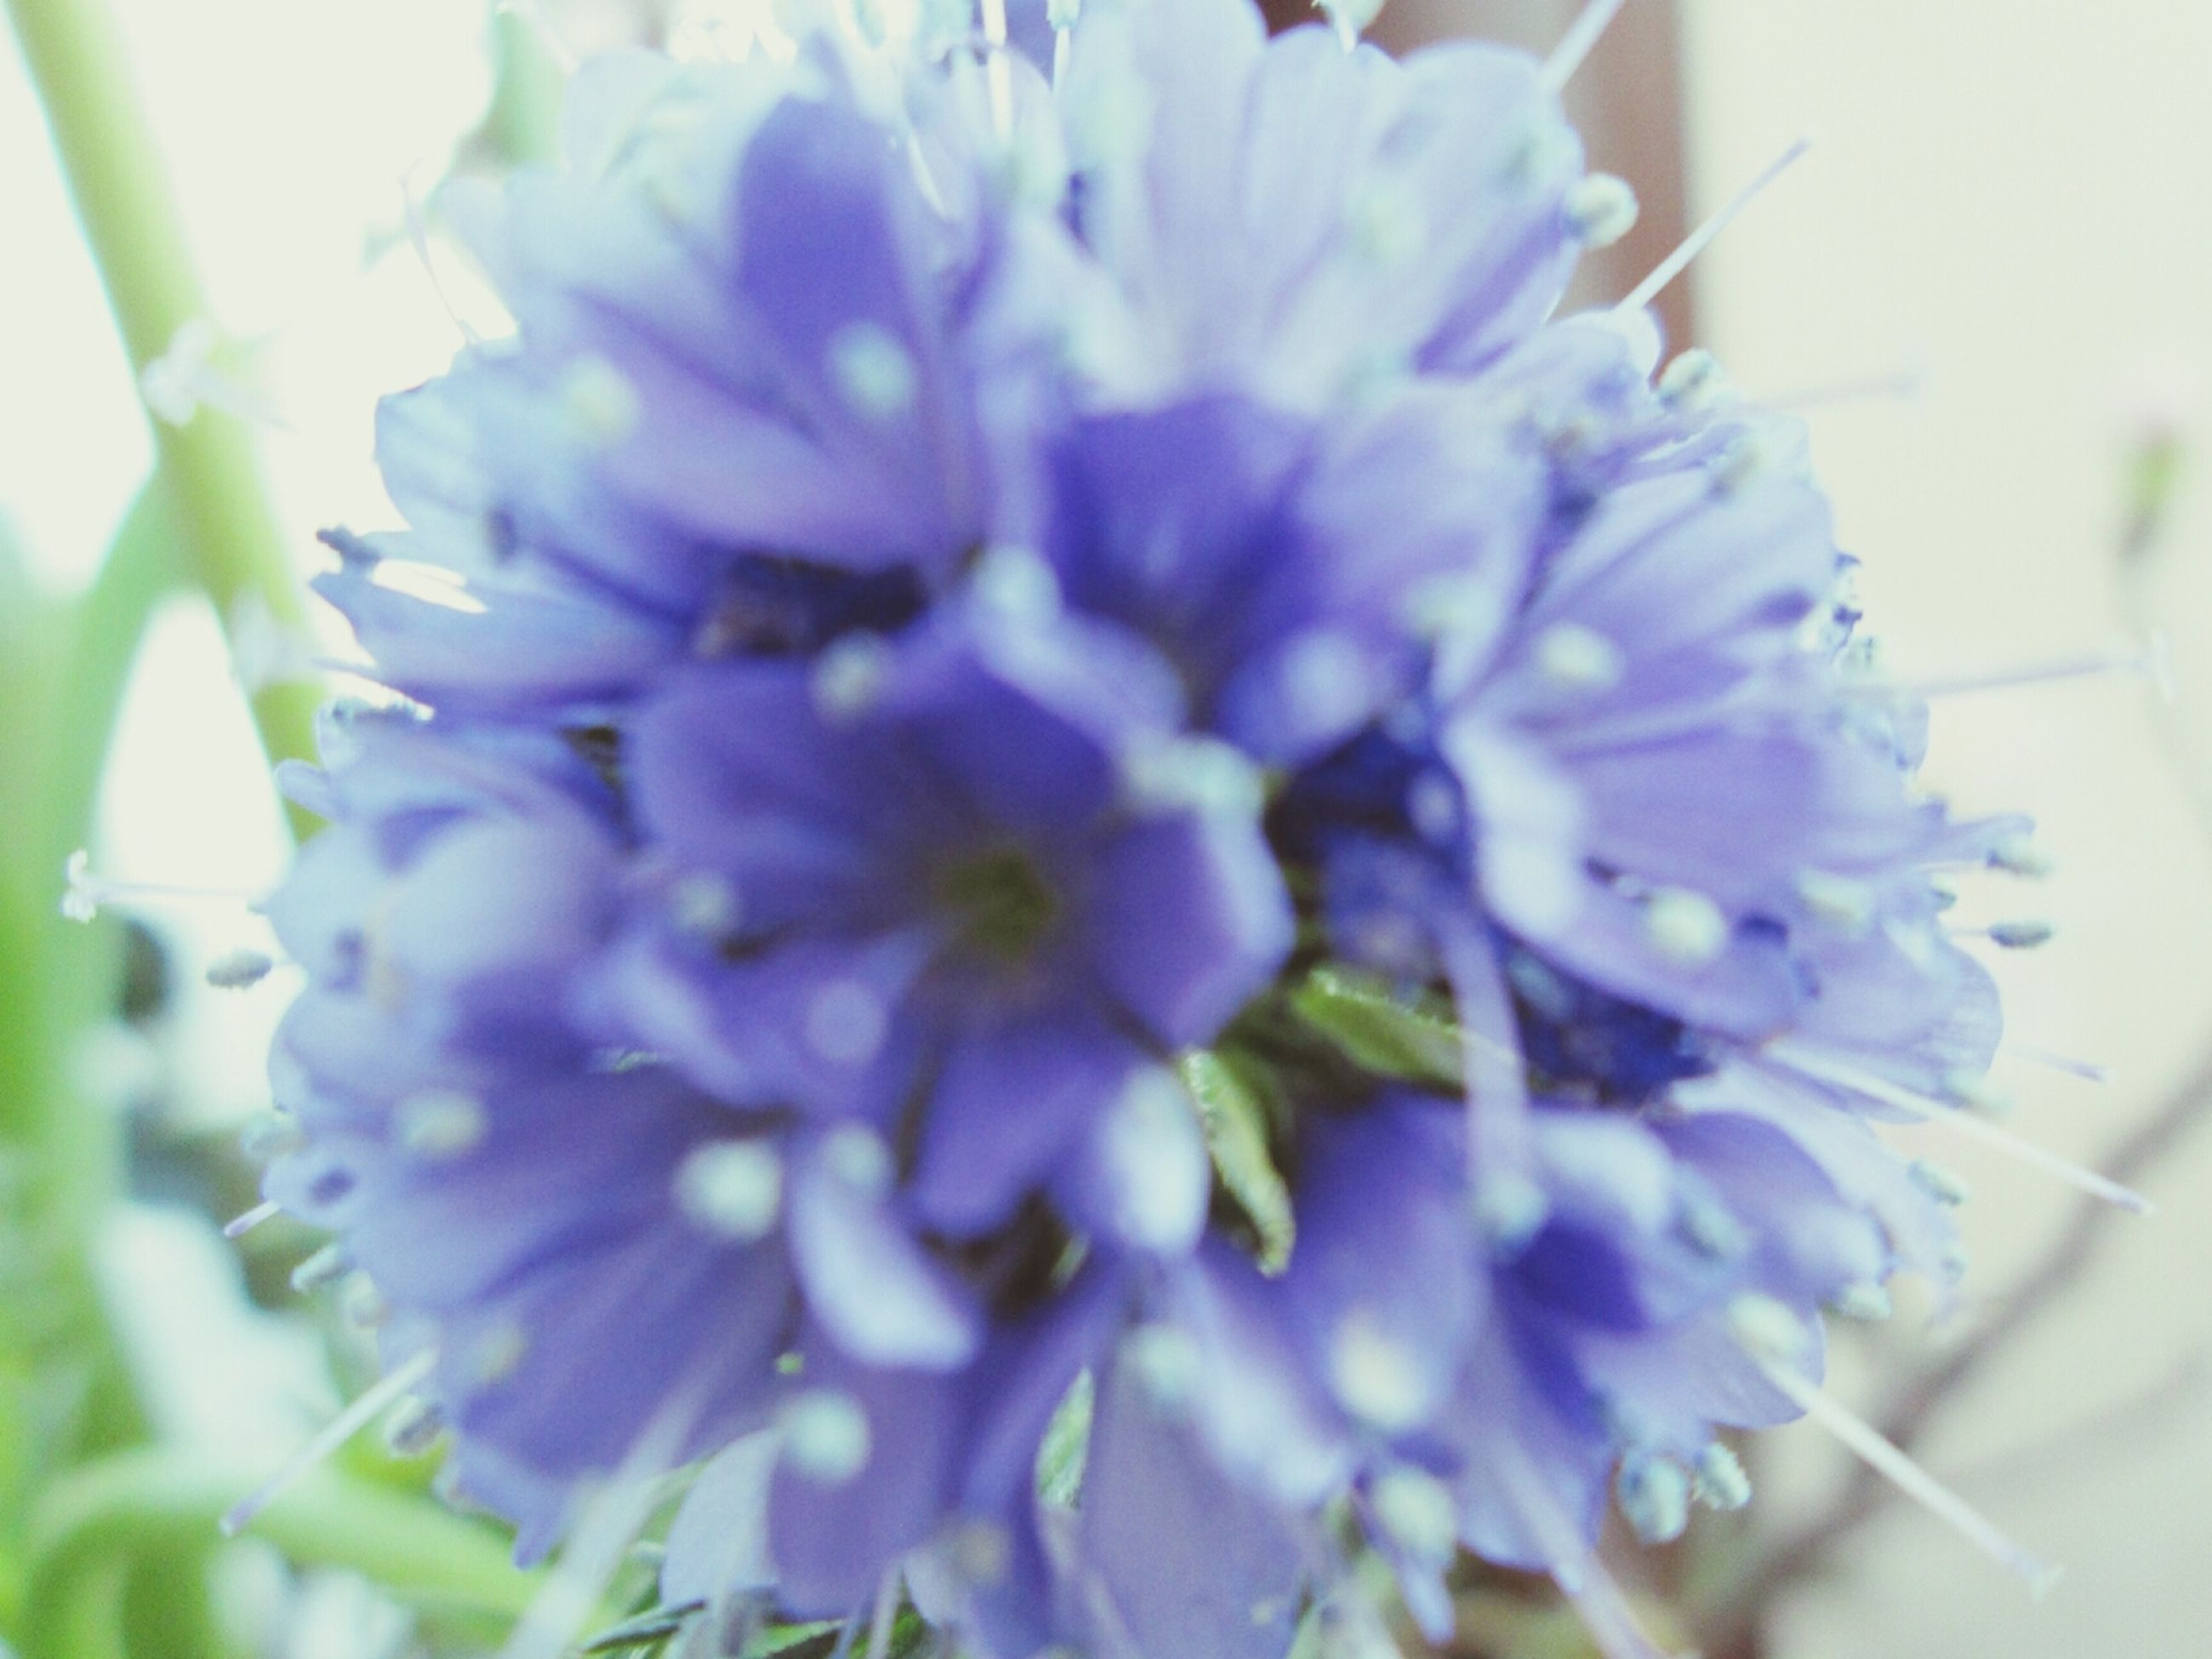 flower, freshness, petal, flower head, fragility, close-up, growth, purple, beauty in nature, nature, blooming, pollen, plant, focus on foreground, single flower, in bloom, selective focus, stamen, blossom, no people